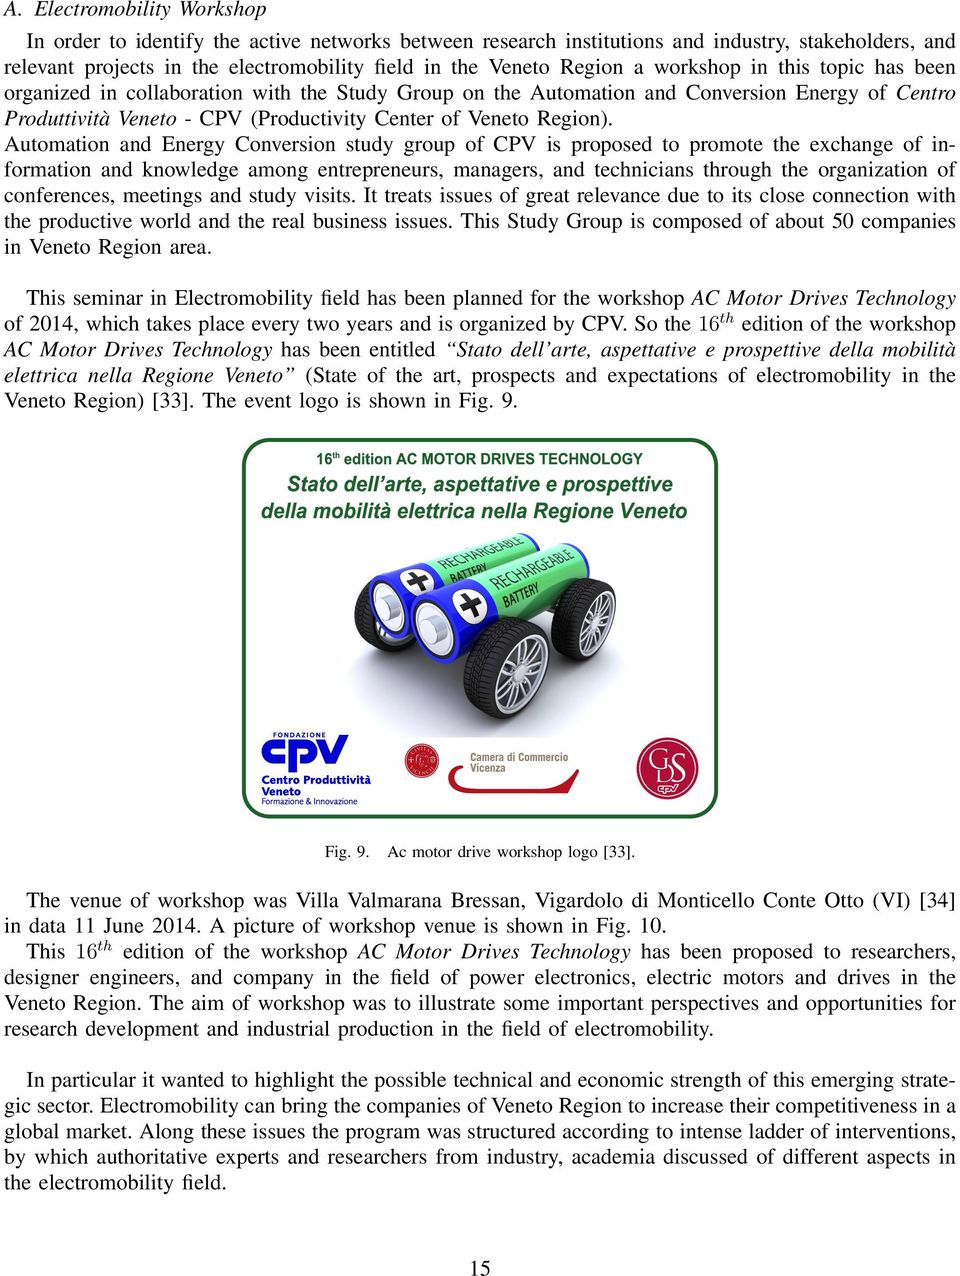 Automation and Energy Conversion study group of CPV is proposed to promote the exchange of information and knowledge among entrepreneurs, managers, and technicians through the organization of